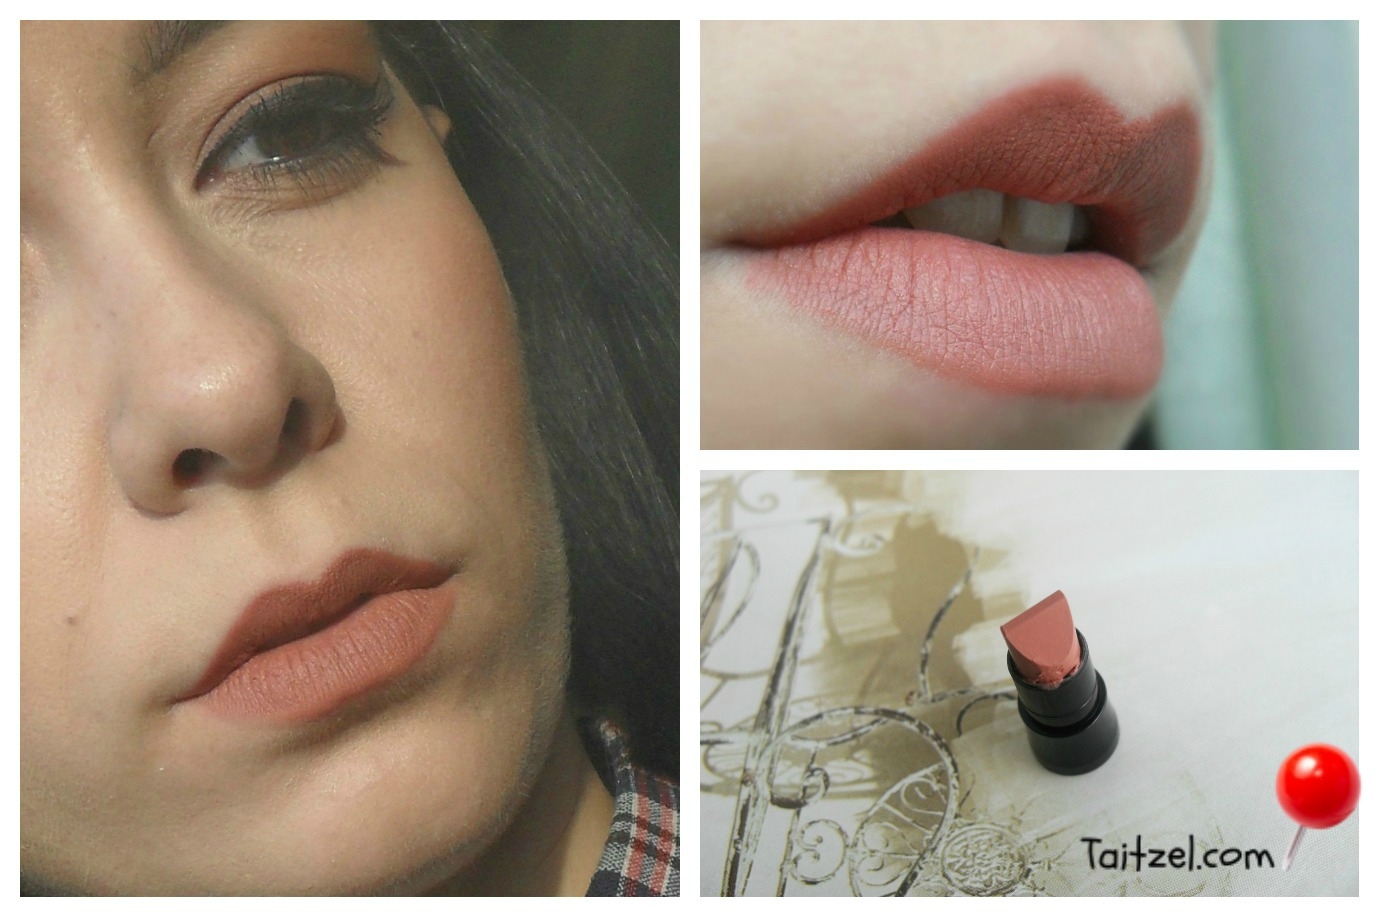 Swatch Avon True Color Perfectly Matte Part 1 Taitzel Beauty